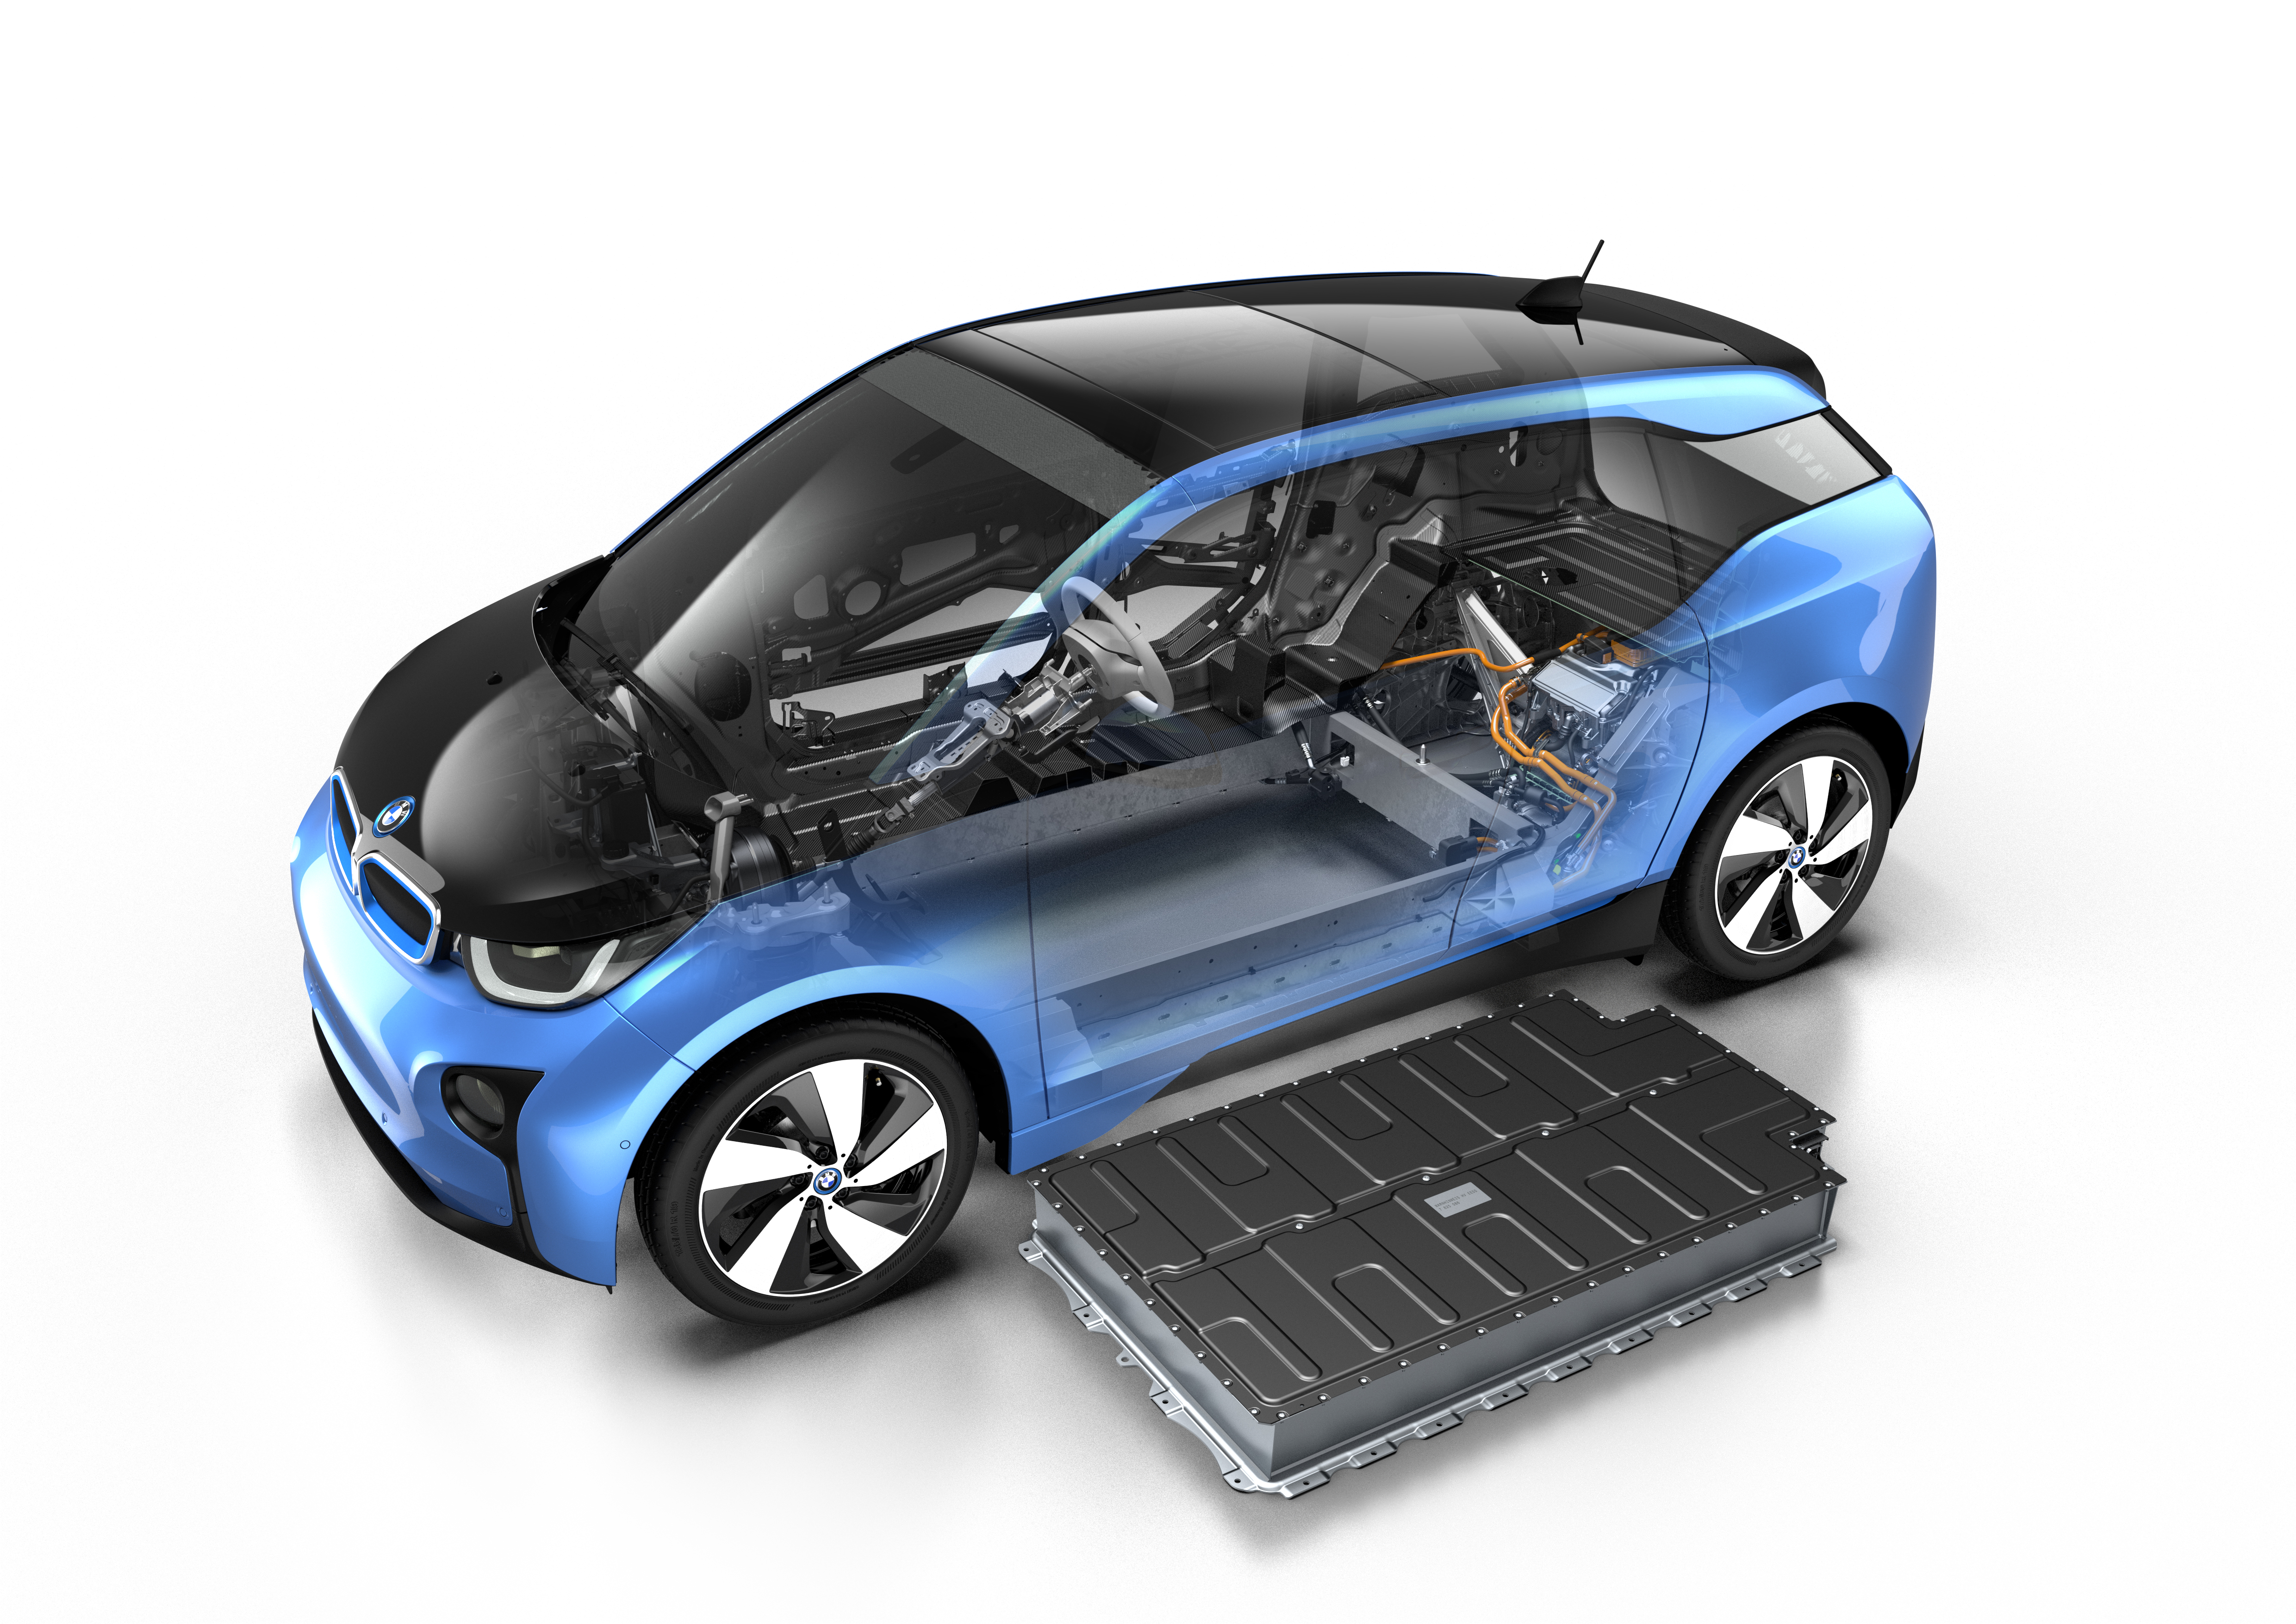 blue gte europe leaf protonic renault bmw vw starts price by in nissan zoe passat followed strong car electric